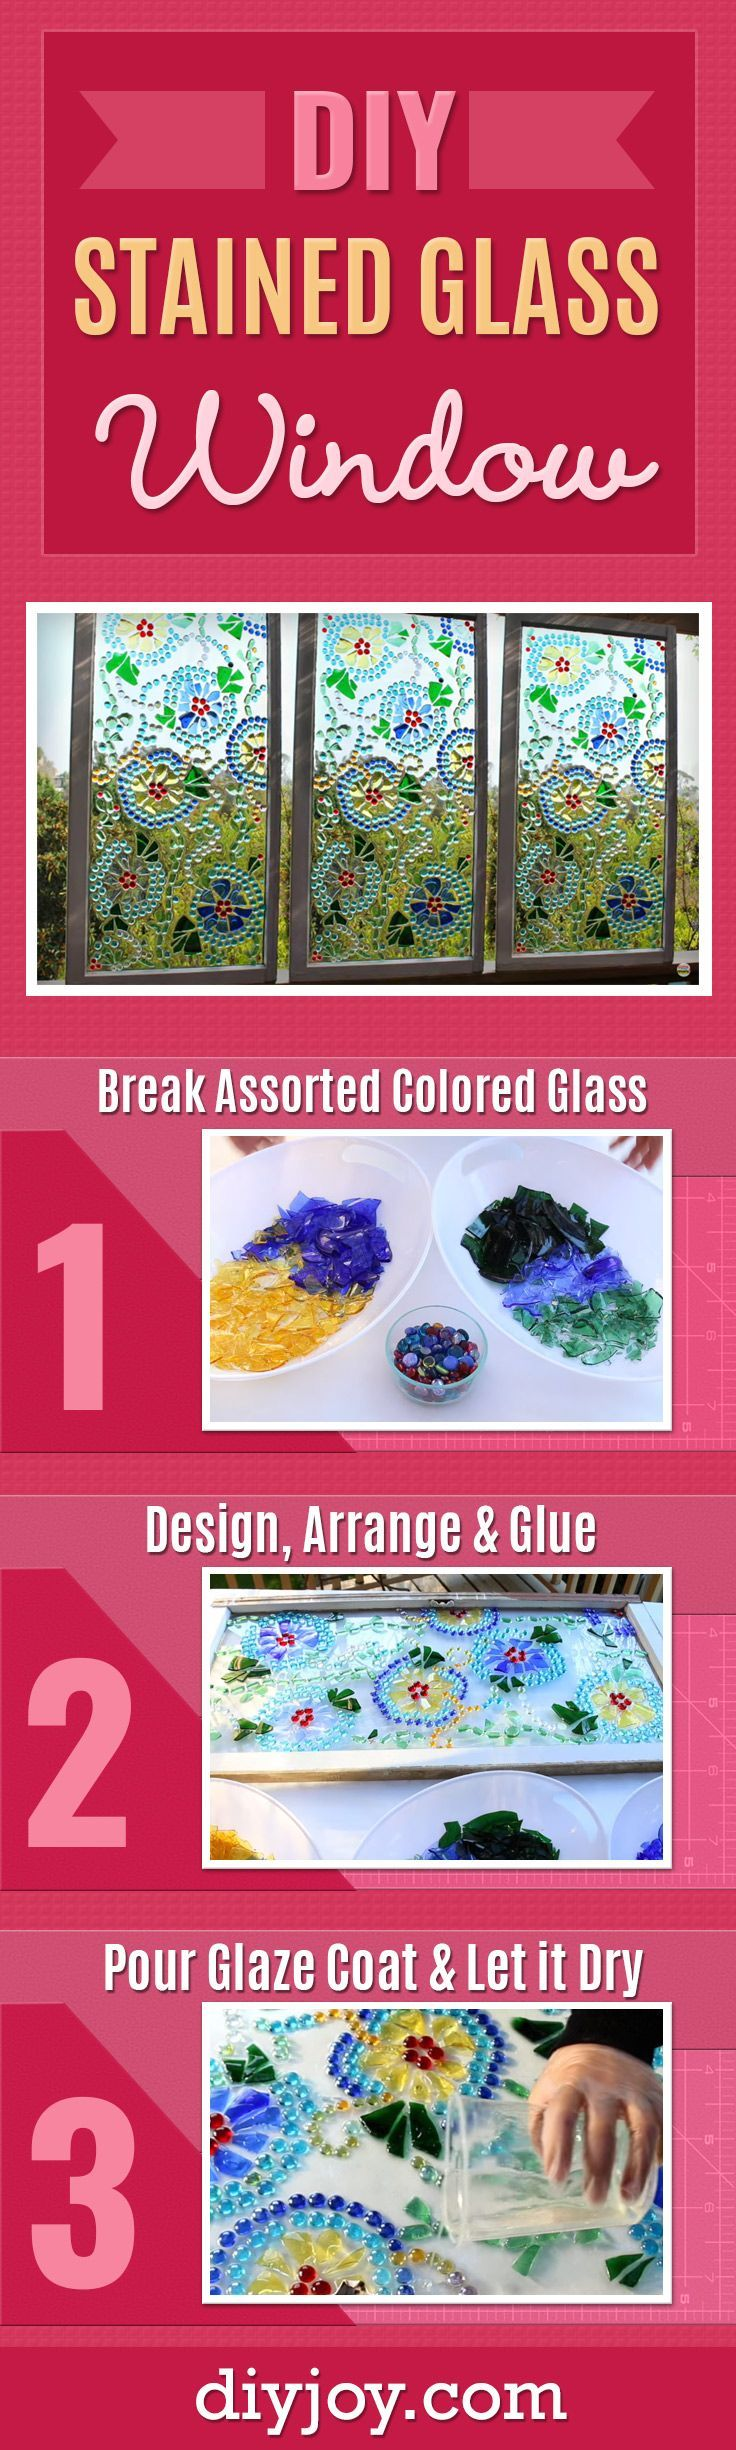 Mark Montano, with Make Your Mark, shows us a brilliant way to create a stained glass window that is much easier than the traditional method using lead in between. I was amazed at how Mark creates this stained glass look on an old window he picked up at a flea market! This is definitely a project